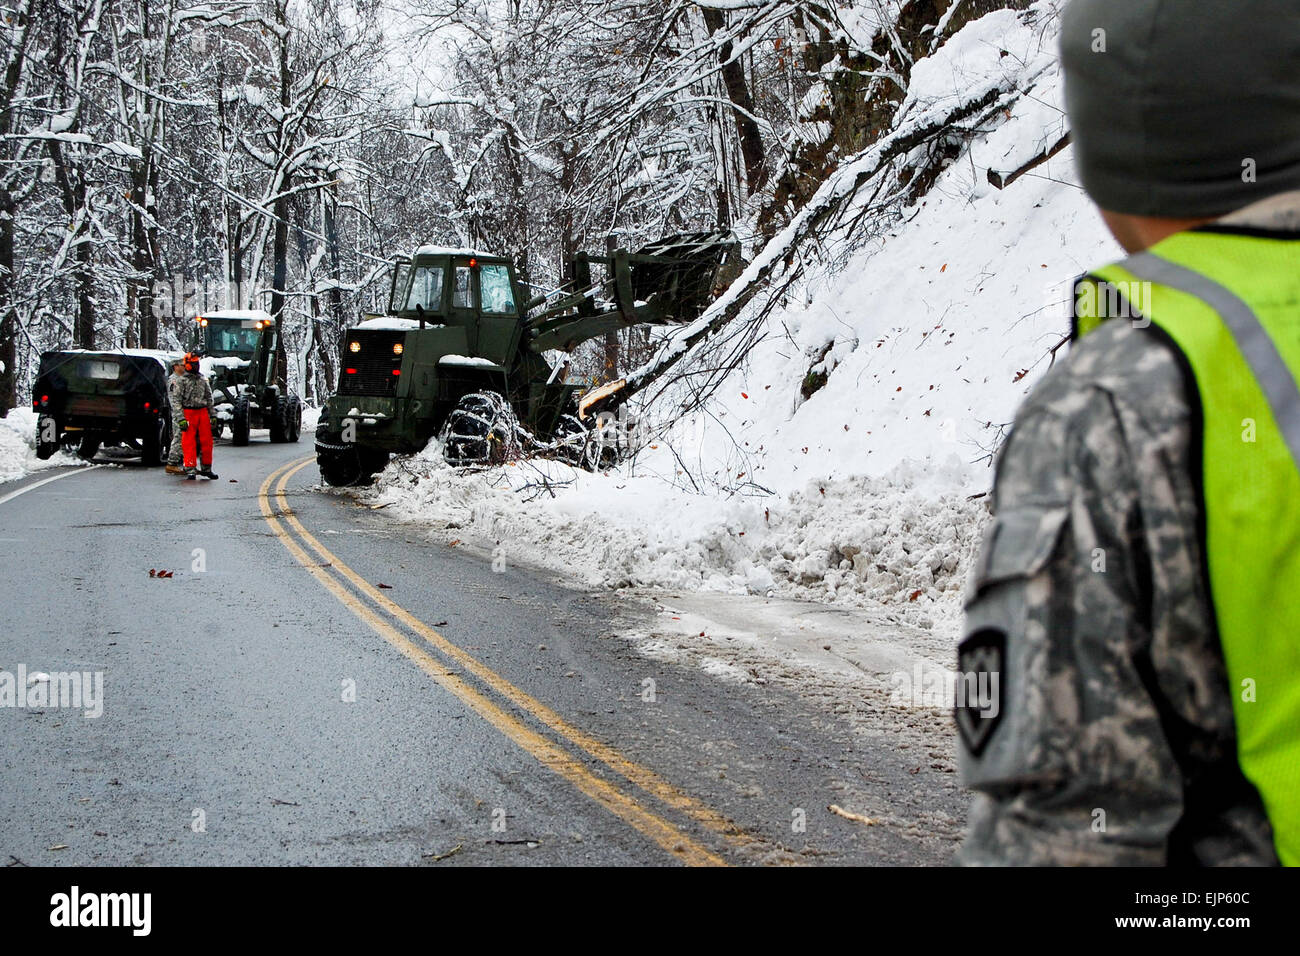 Soldiers of the West Virginia Army National Guard assigned to 821st Engineering Company from Summersville, W.Va., Stock Photo